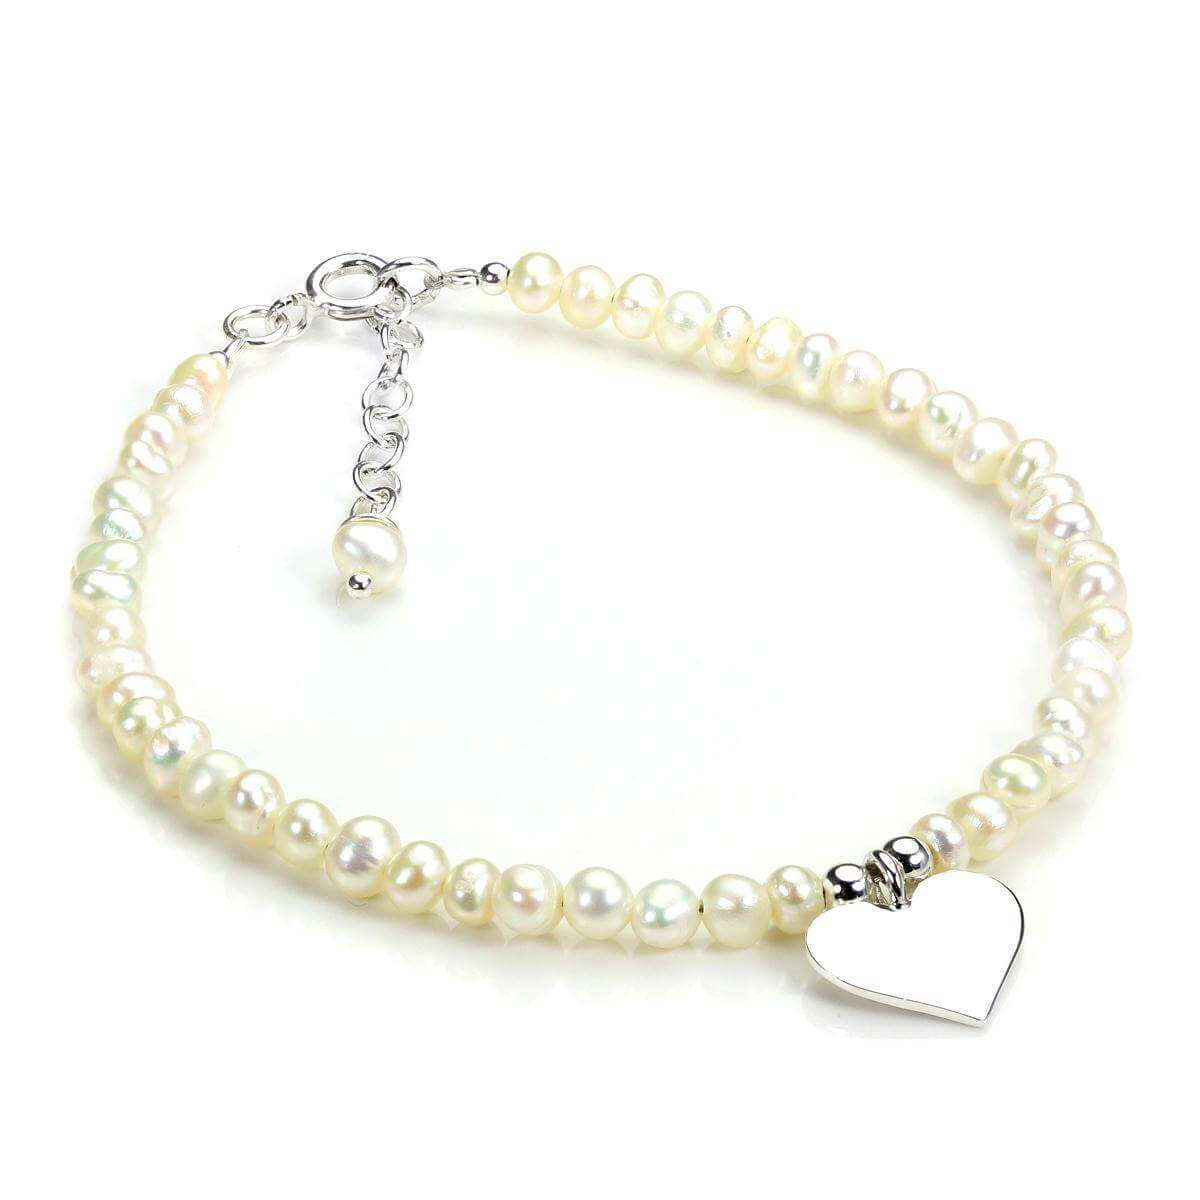 Sterling Silver & White Freshwater Pearl Adjustable Bracelet with Heart Charm